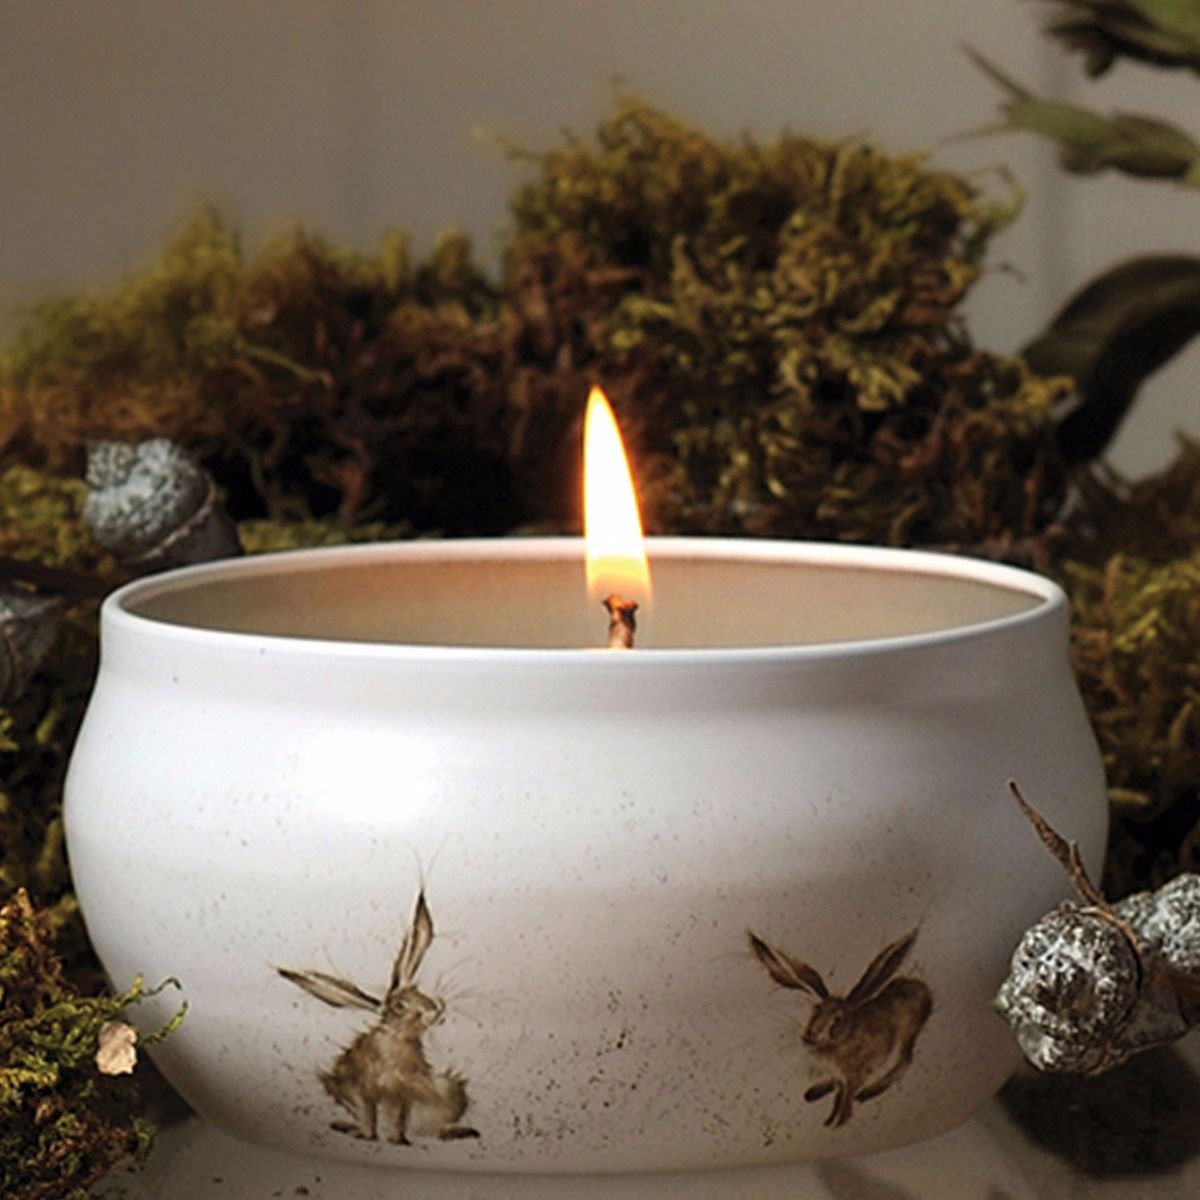 The Scented Bliss Candle Hare in front of some garden greenery.